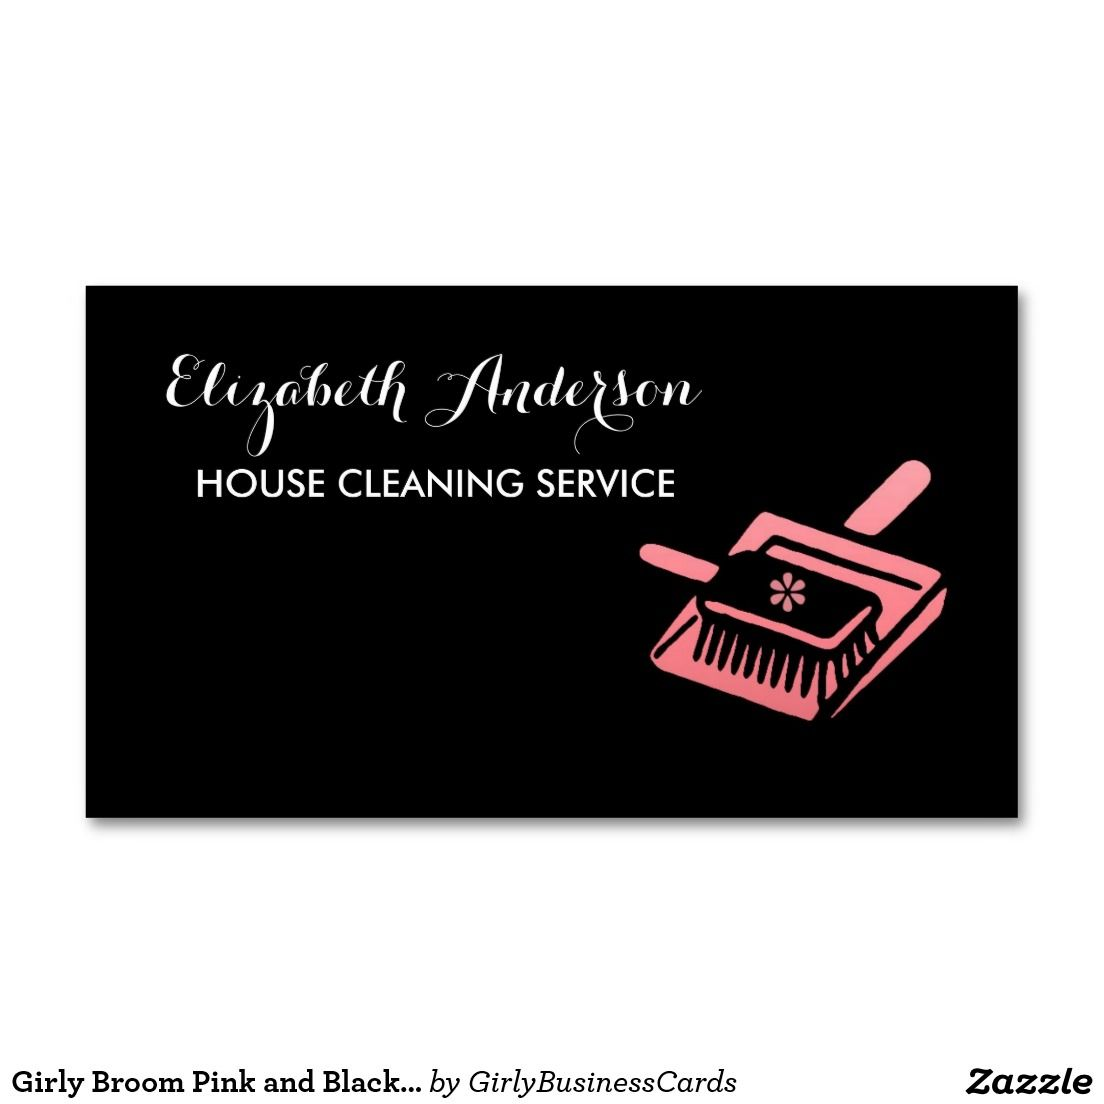 Girly Broom Pink and Black House Cleaning Service Business Card ...